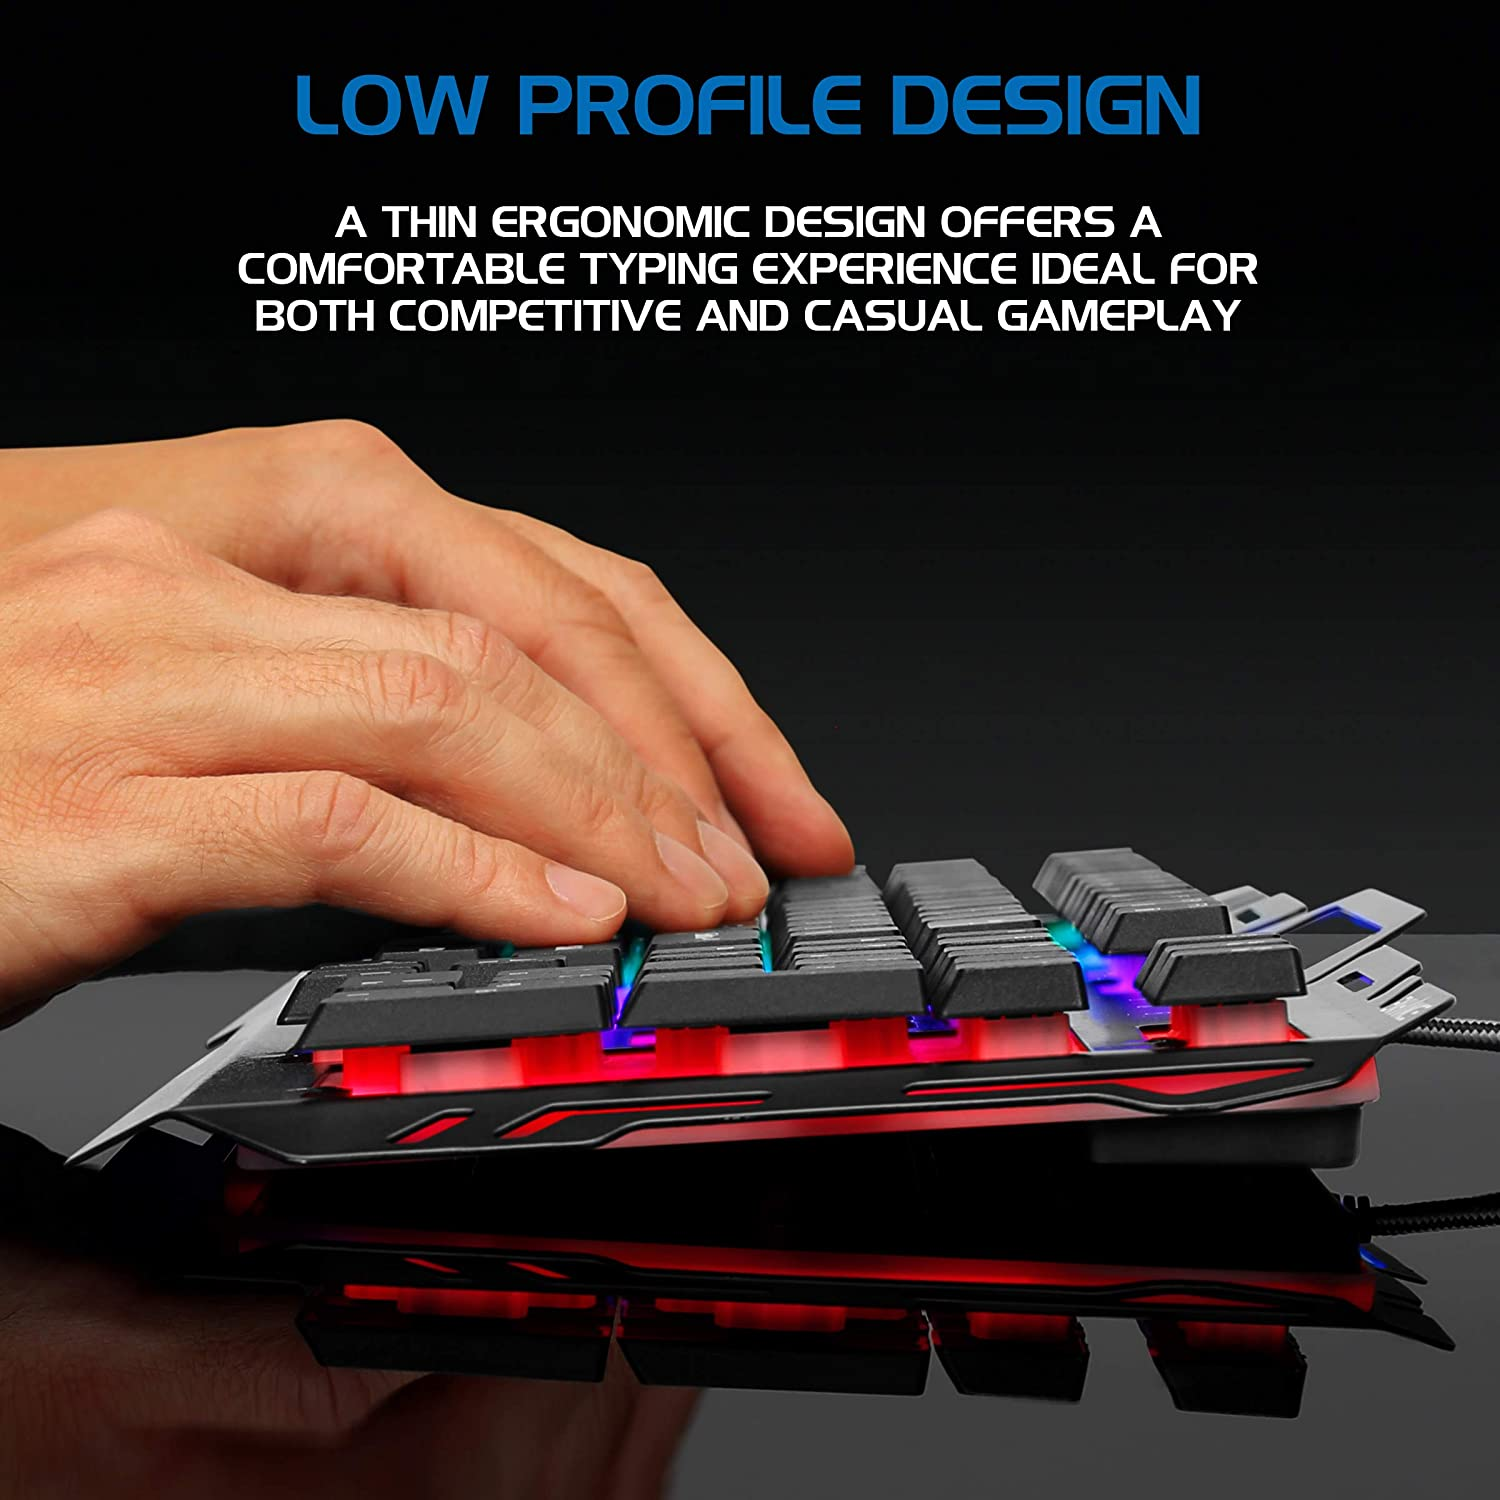 Turbo Input Mode 19 Key Roll Over ENHANCE Infiltrate KL2 Membrane Gaming Keyboard Quiet Keyboard with 3 Multi Color LED Lighting Modes Slim Low Profile Metal Design Anti-Ghosting